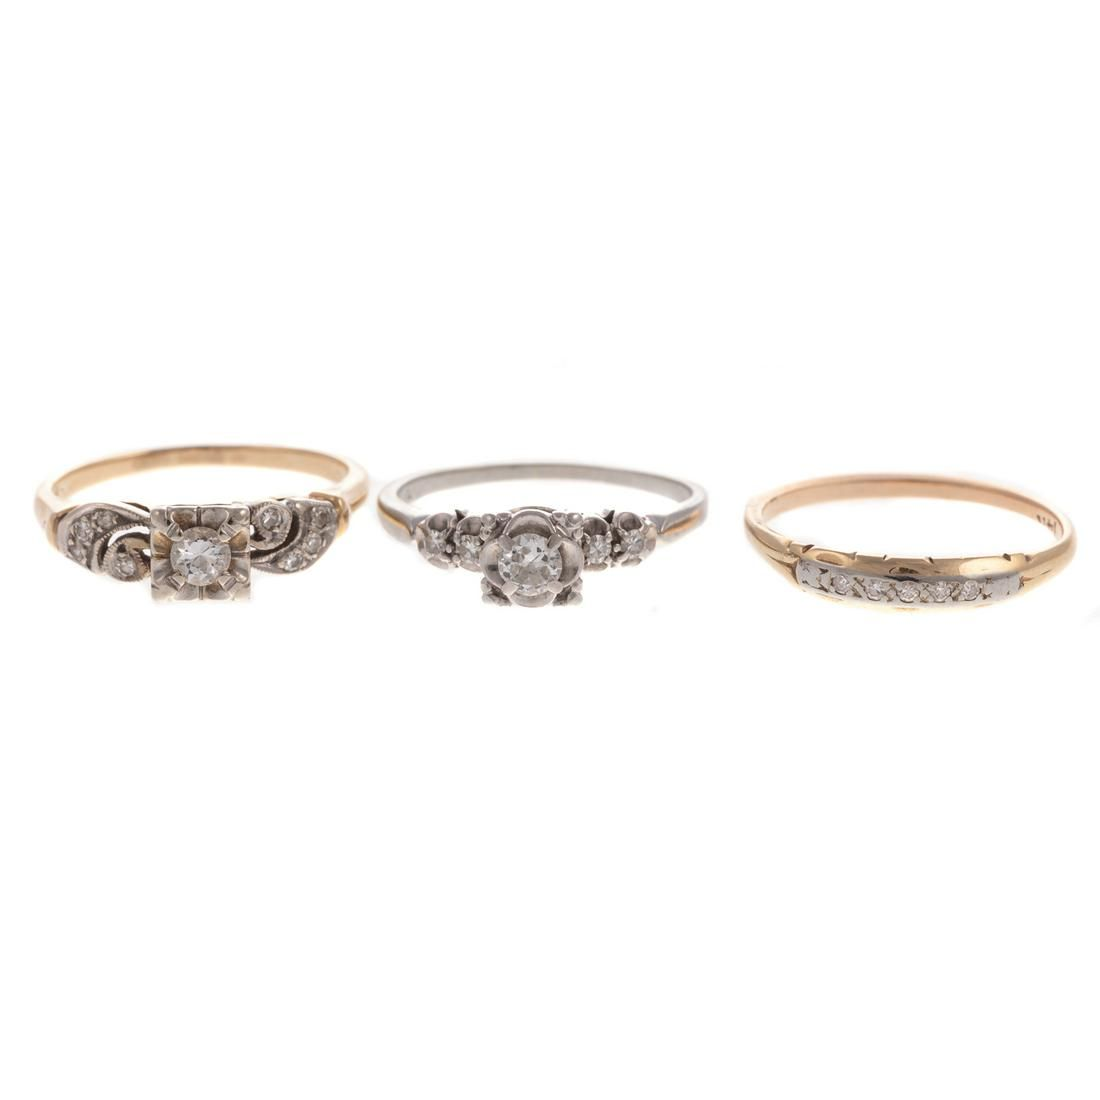 A Trio of Vintage Diamond Rings in Gold